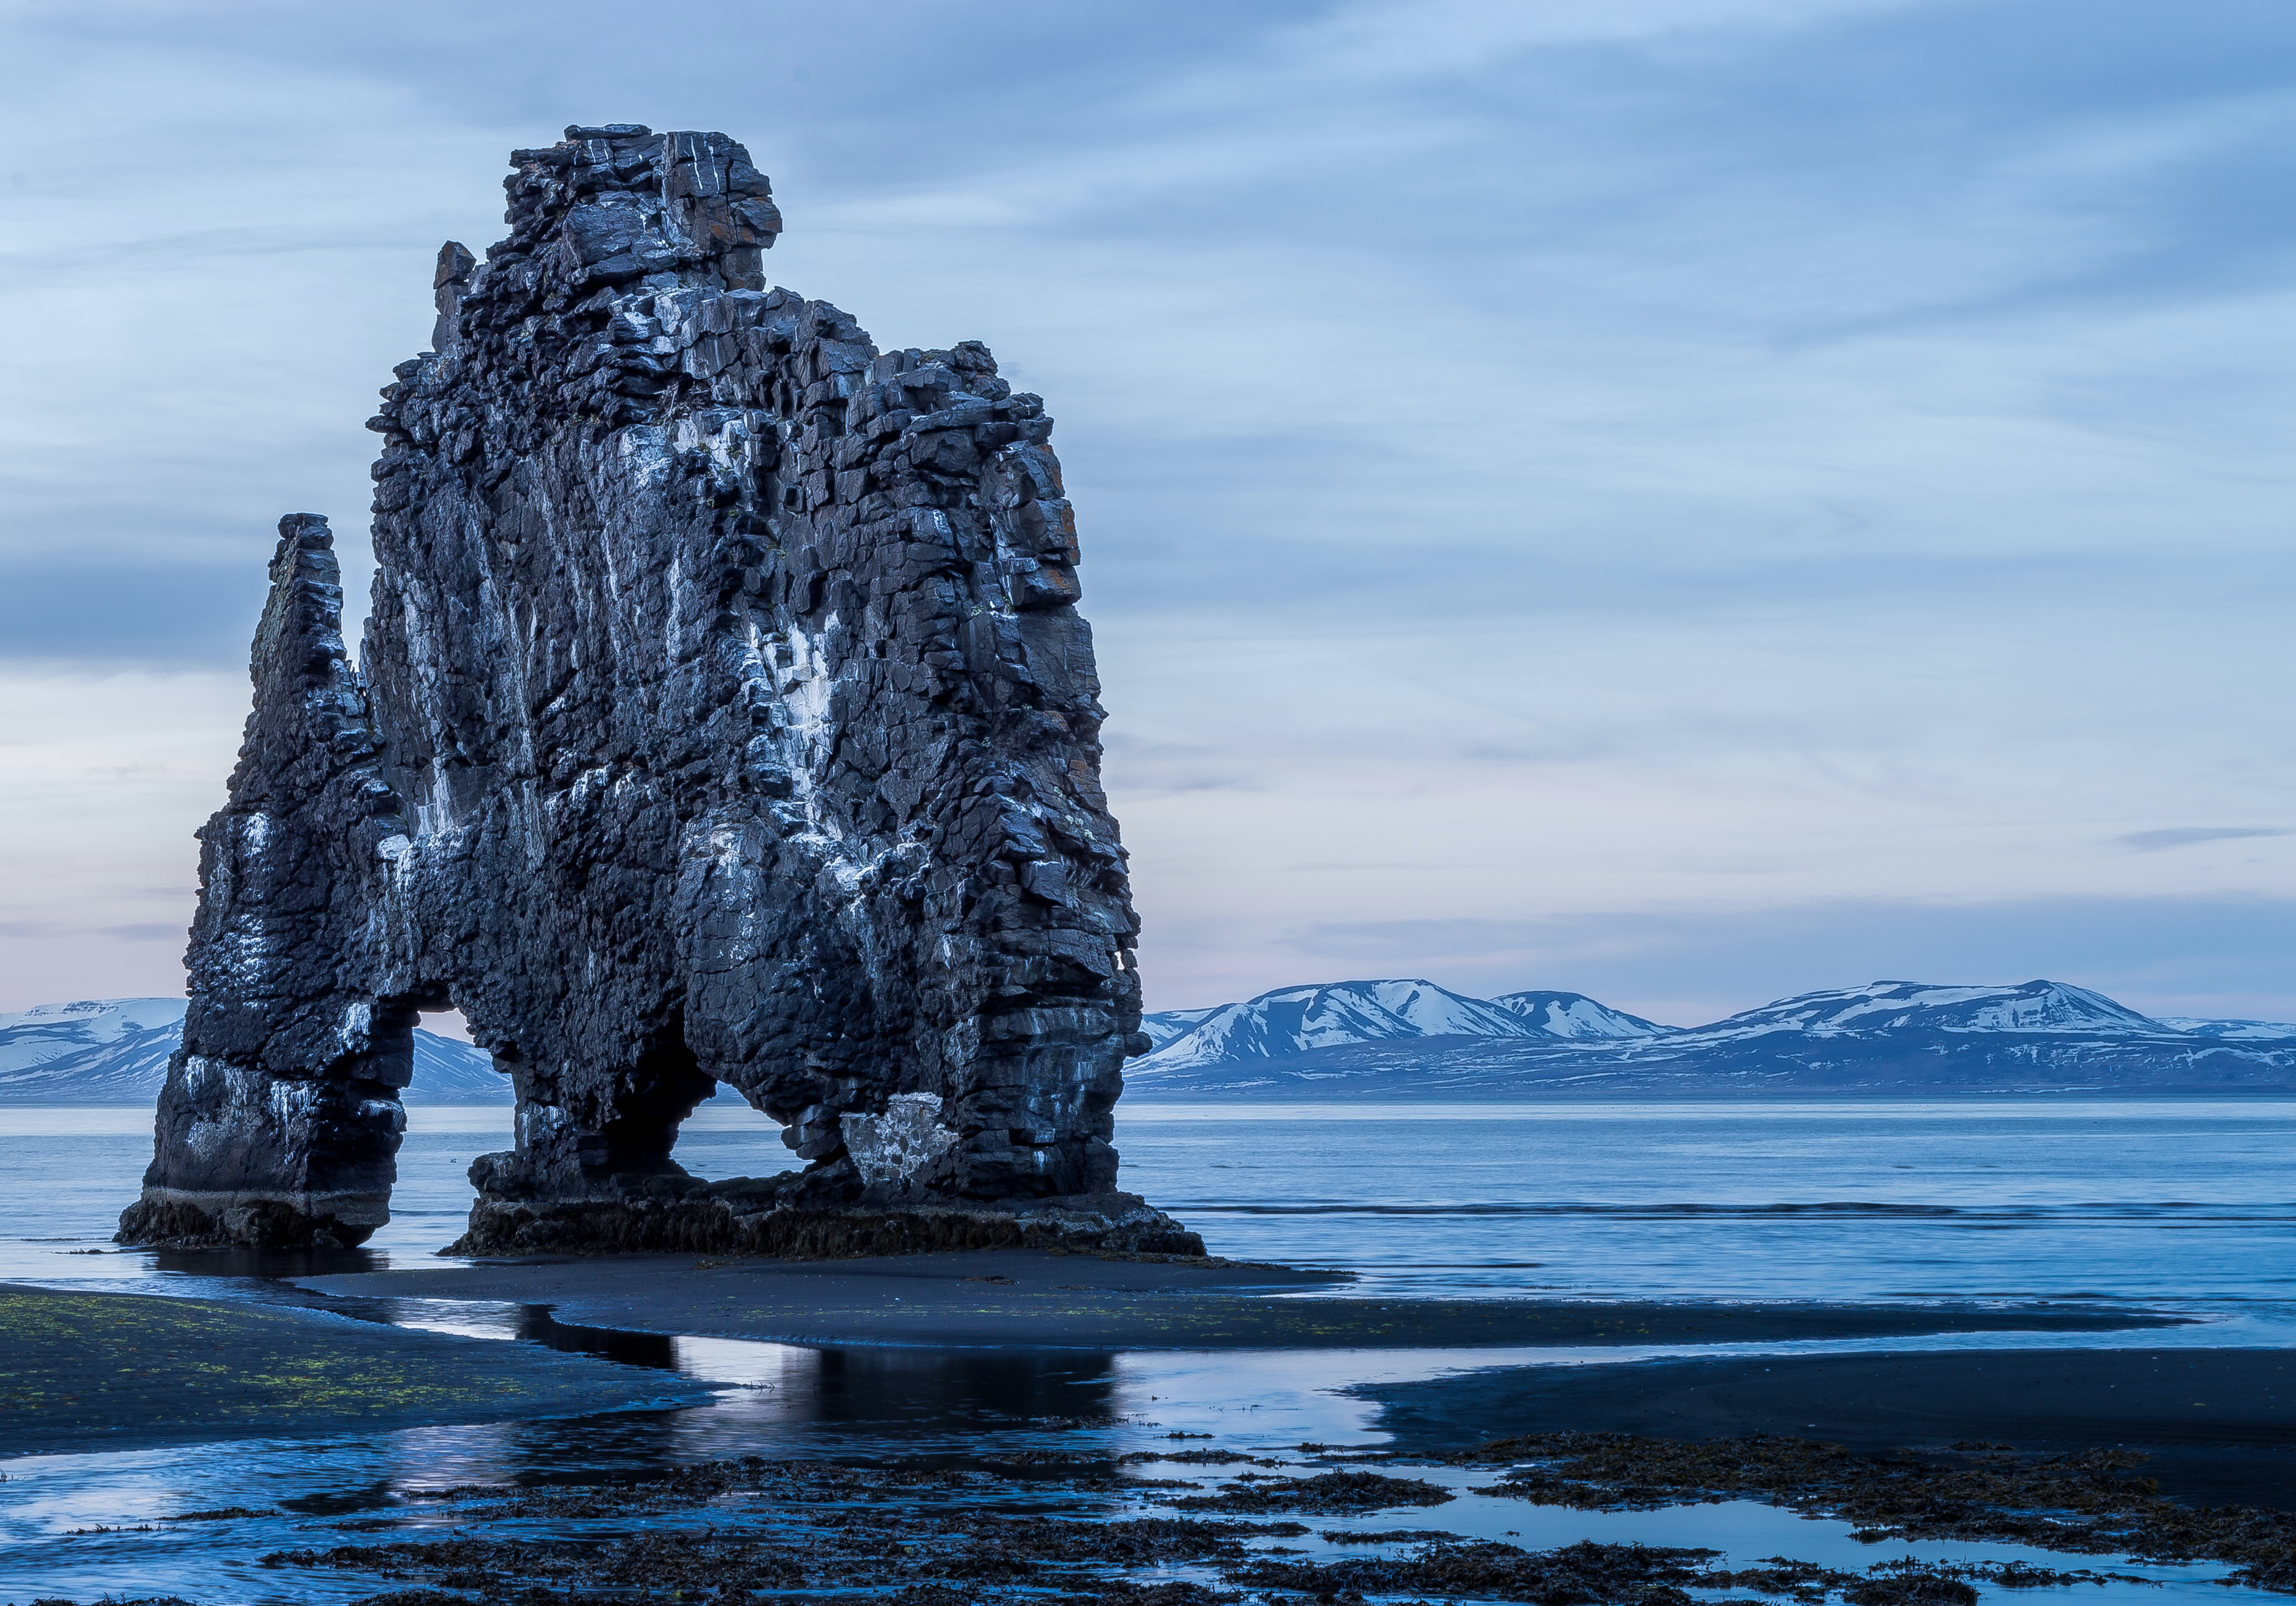 Tall rock formation above the ocean with snow covered mountains in the background at Hvítserkur